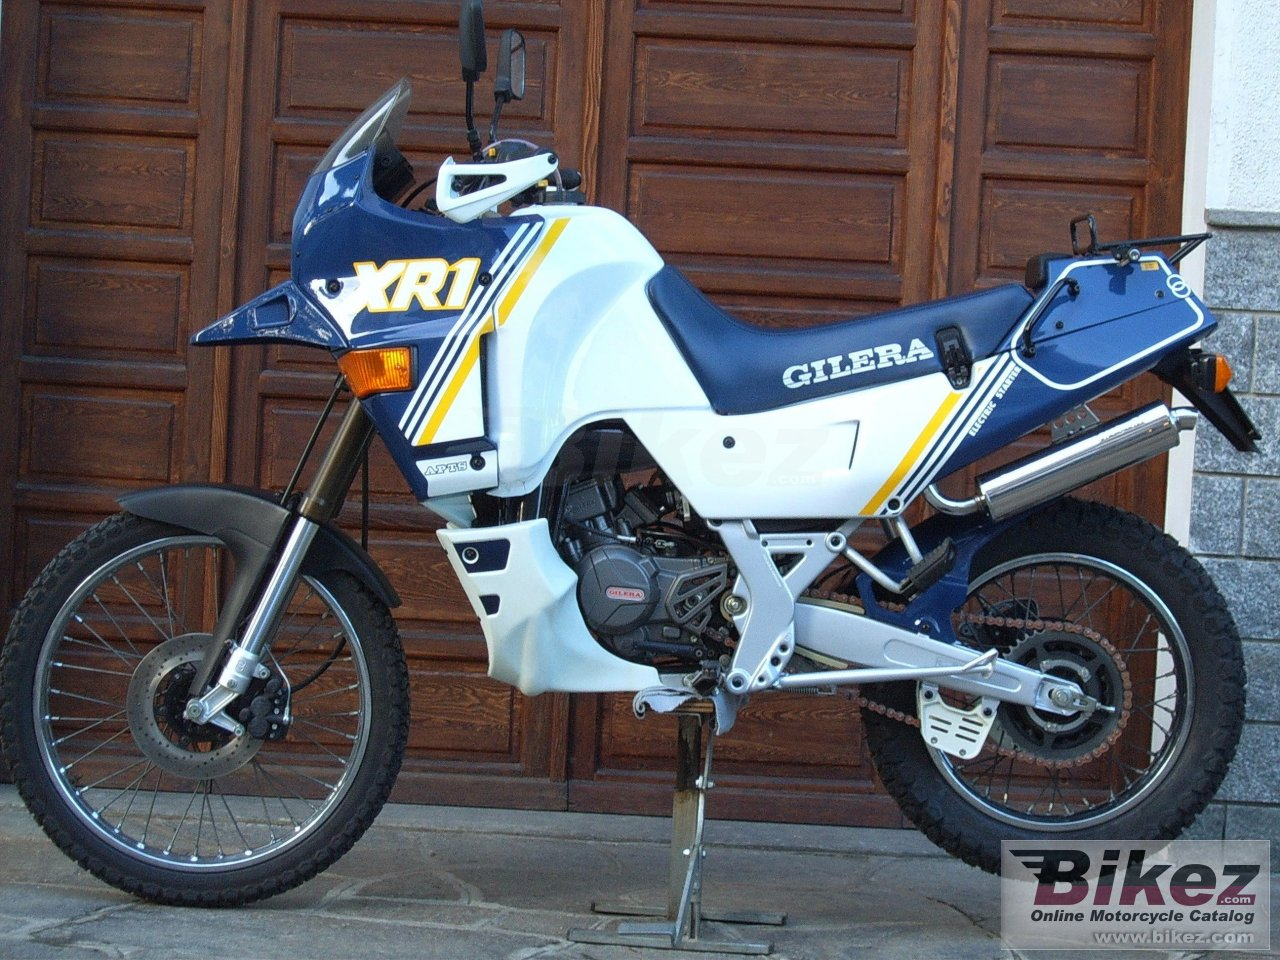 Big - Arona (NO) - Italia xr1-125 picture and wallpaper from Bikez.com